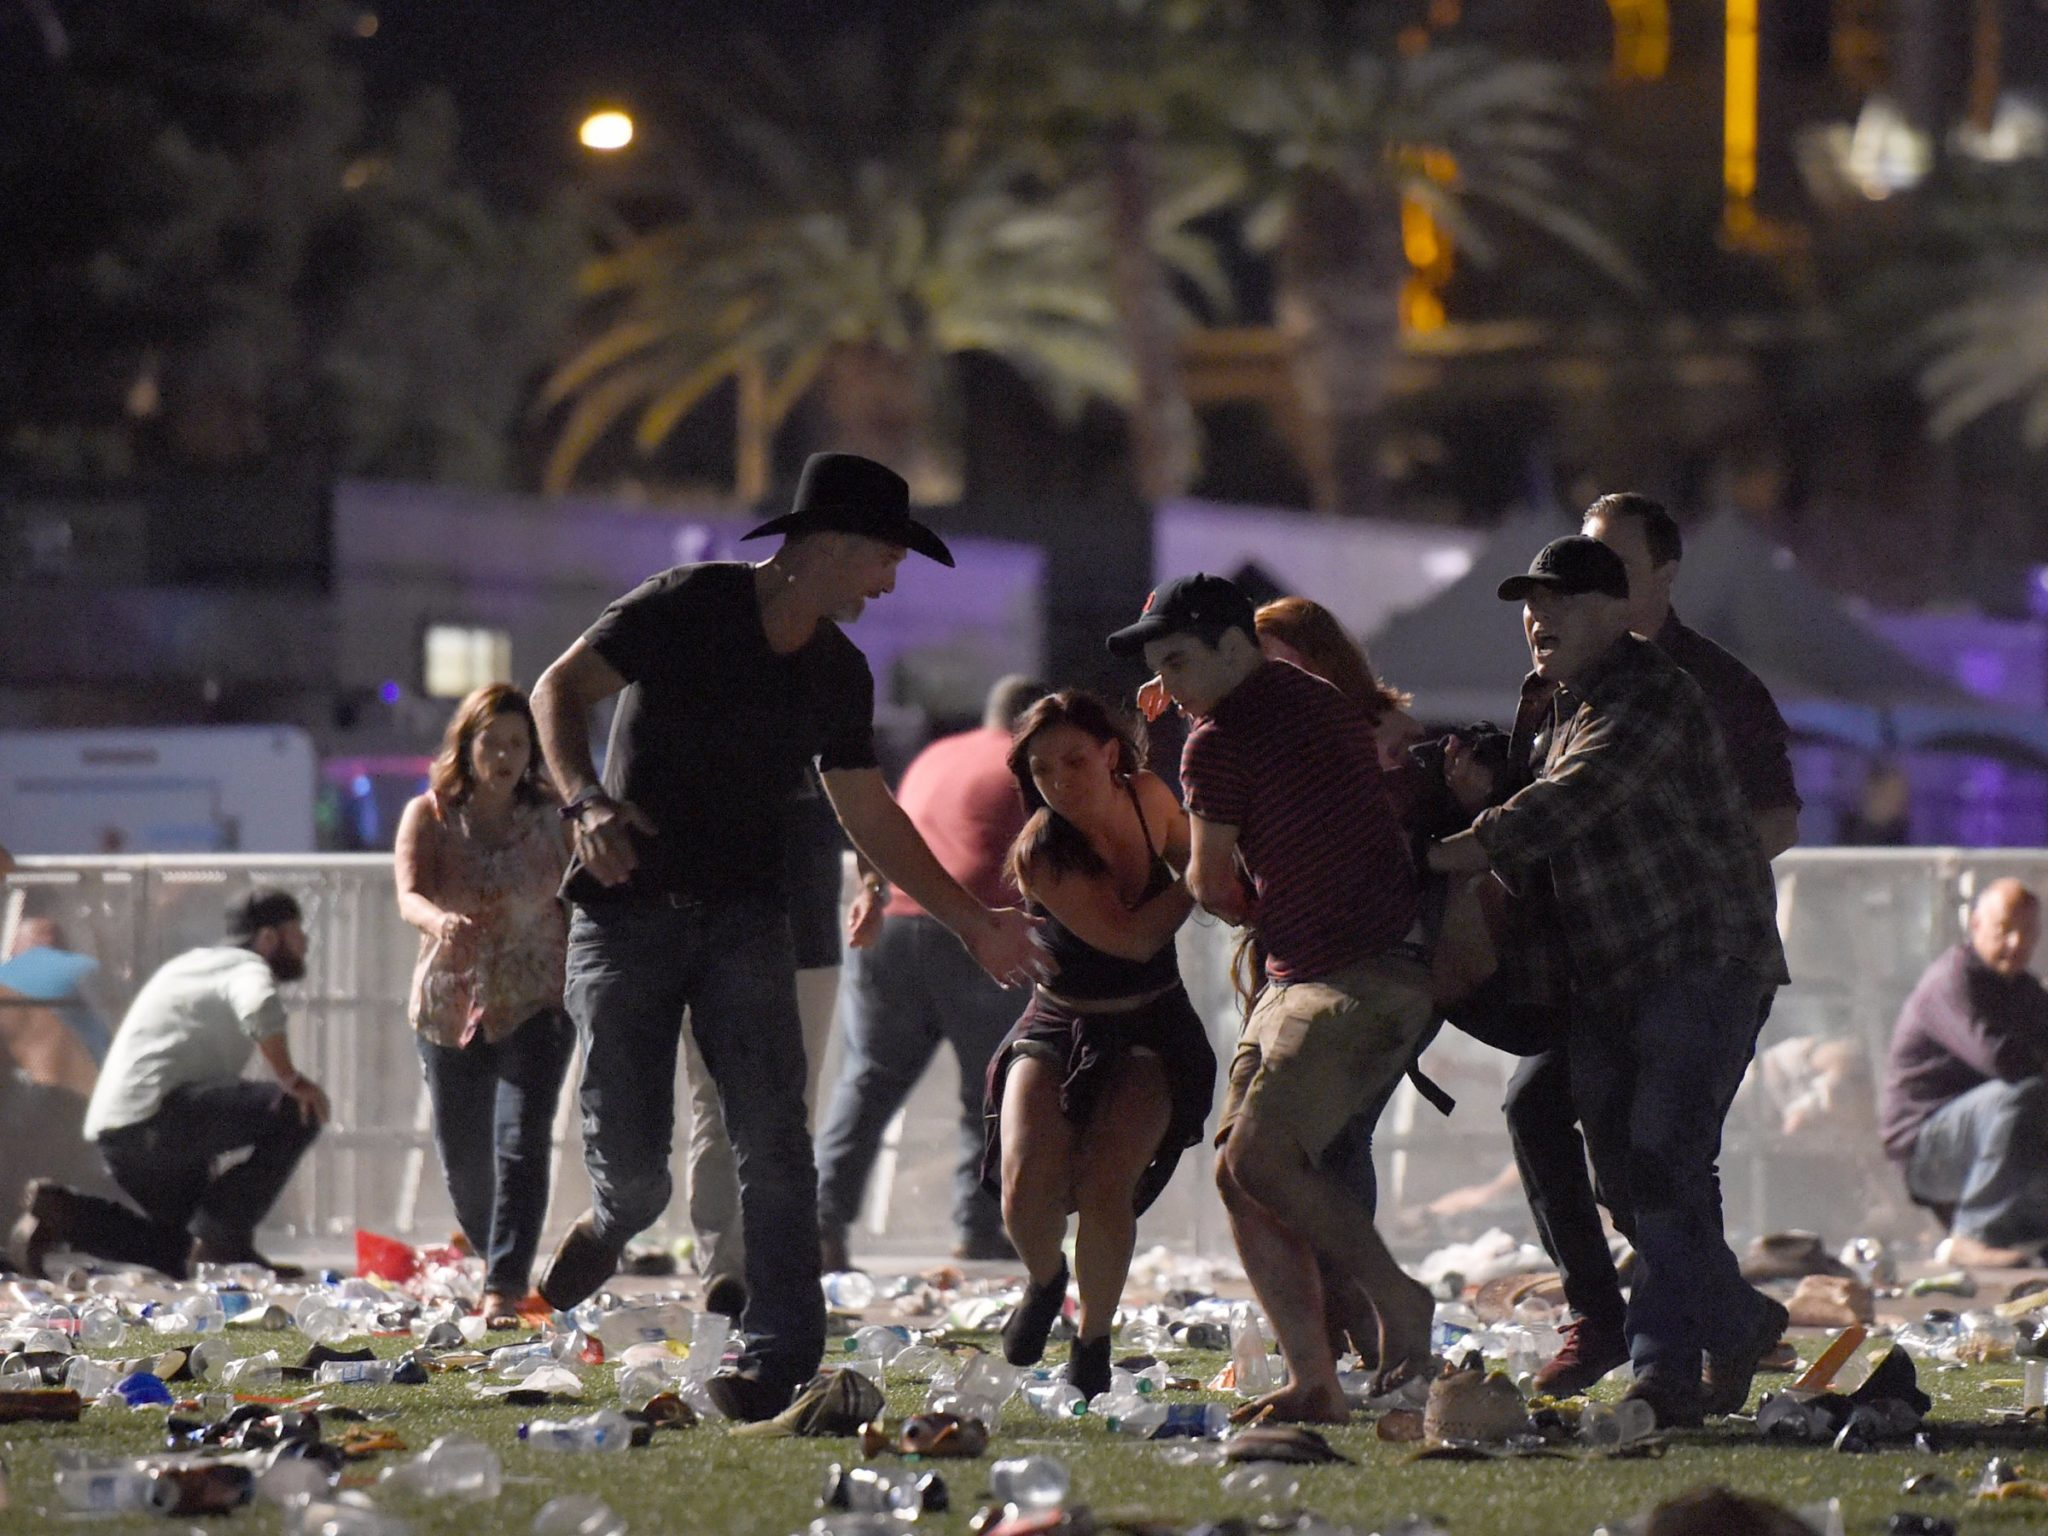 OP-ED: On Vegas, festival security, and the future of live entertainment